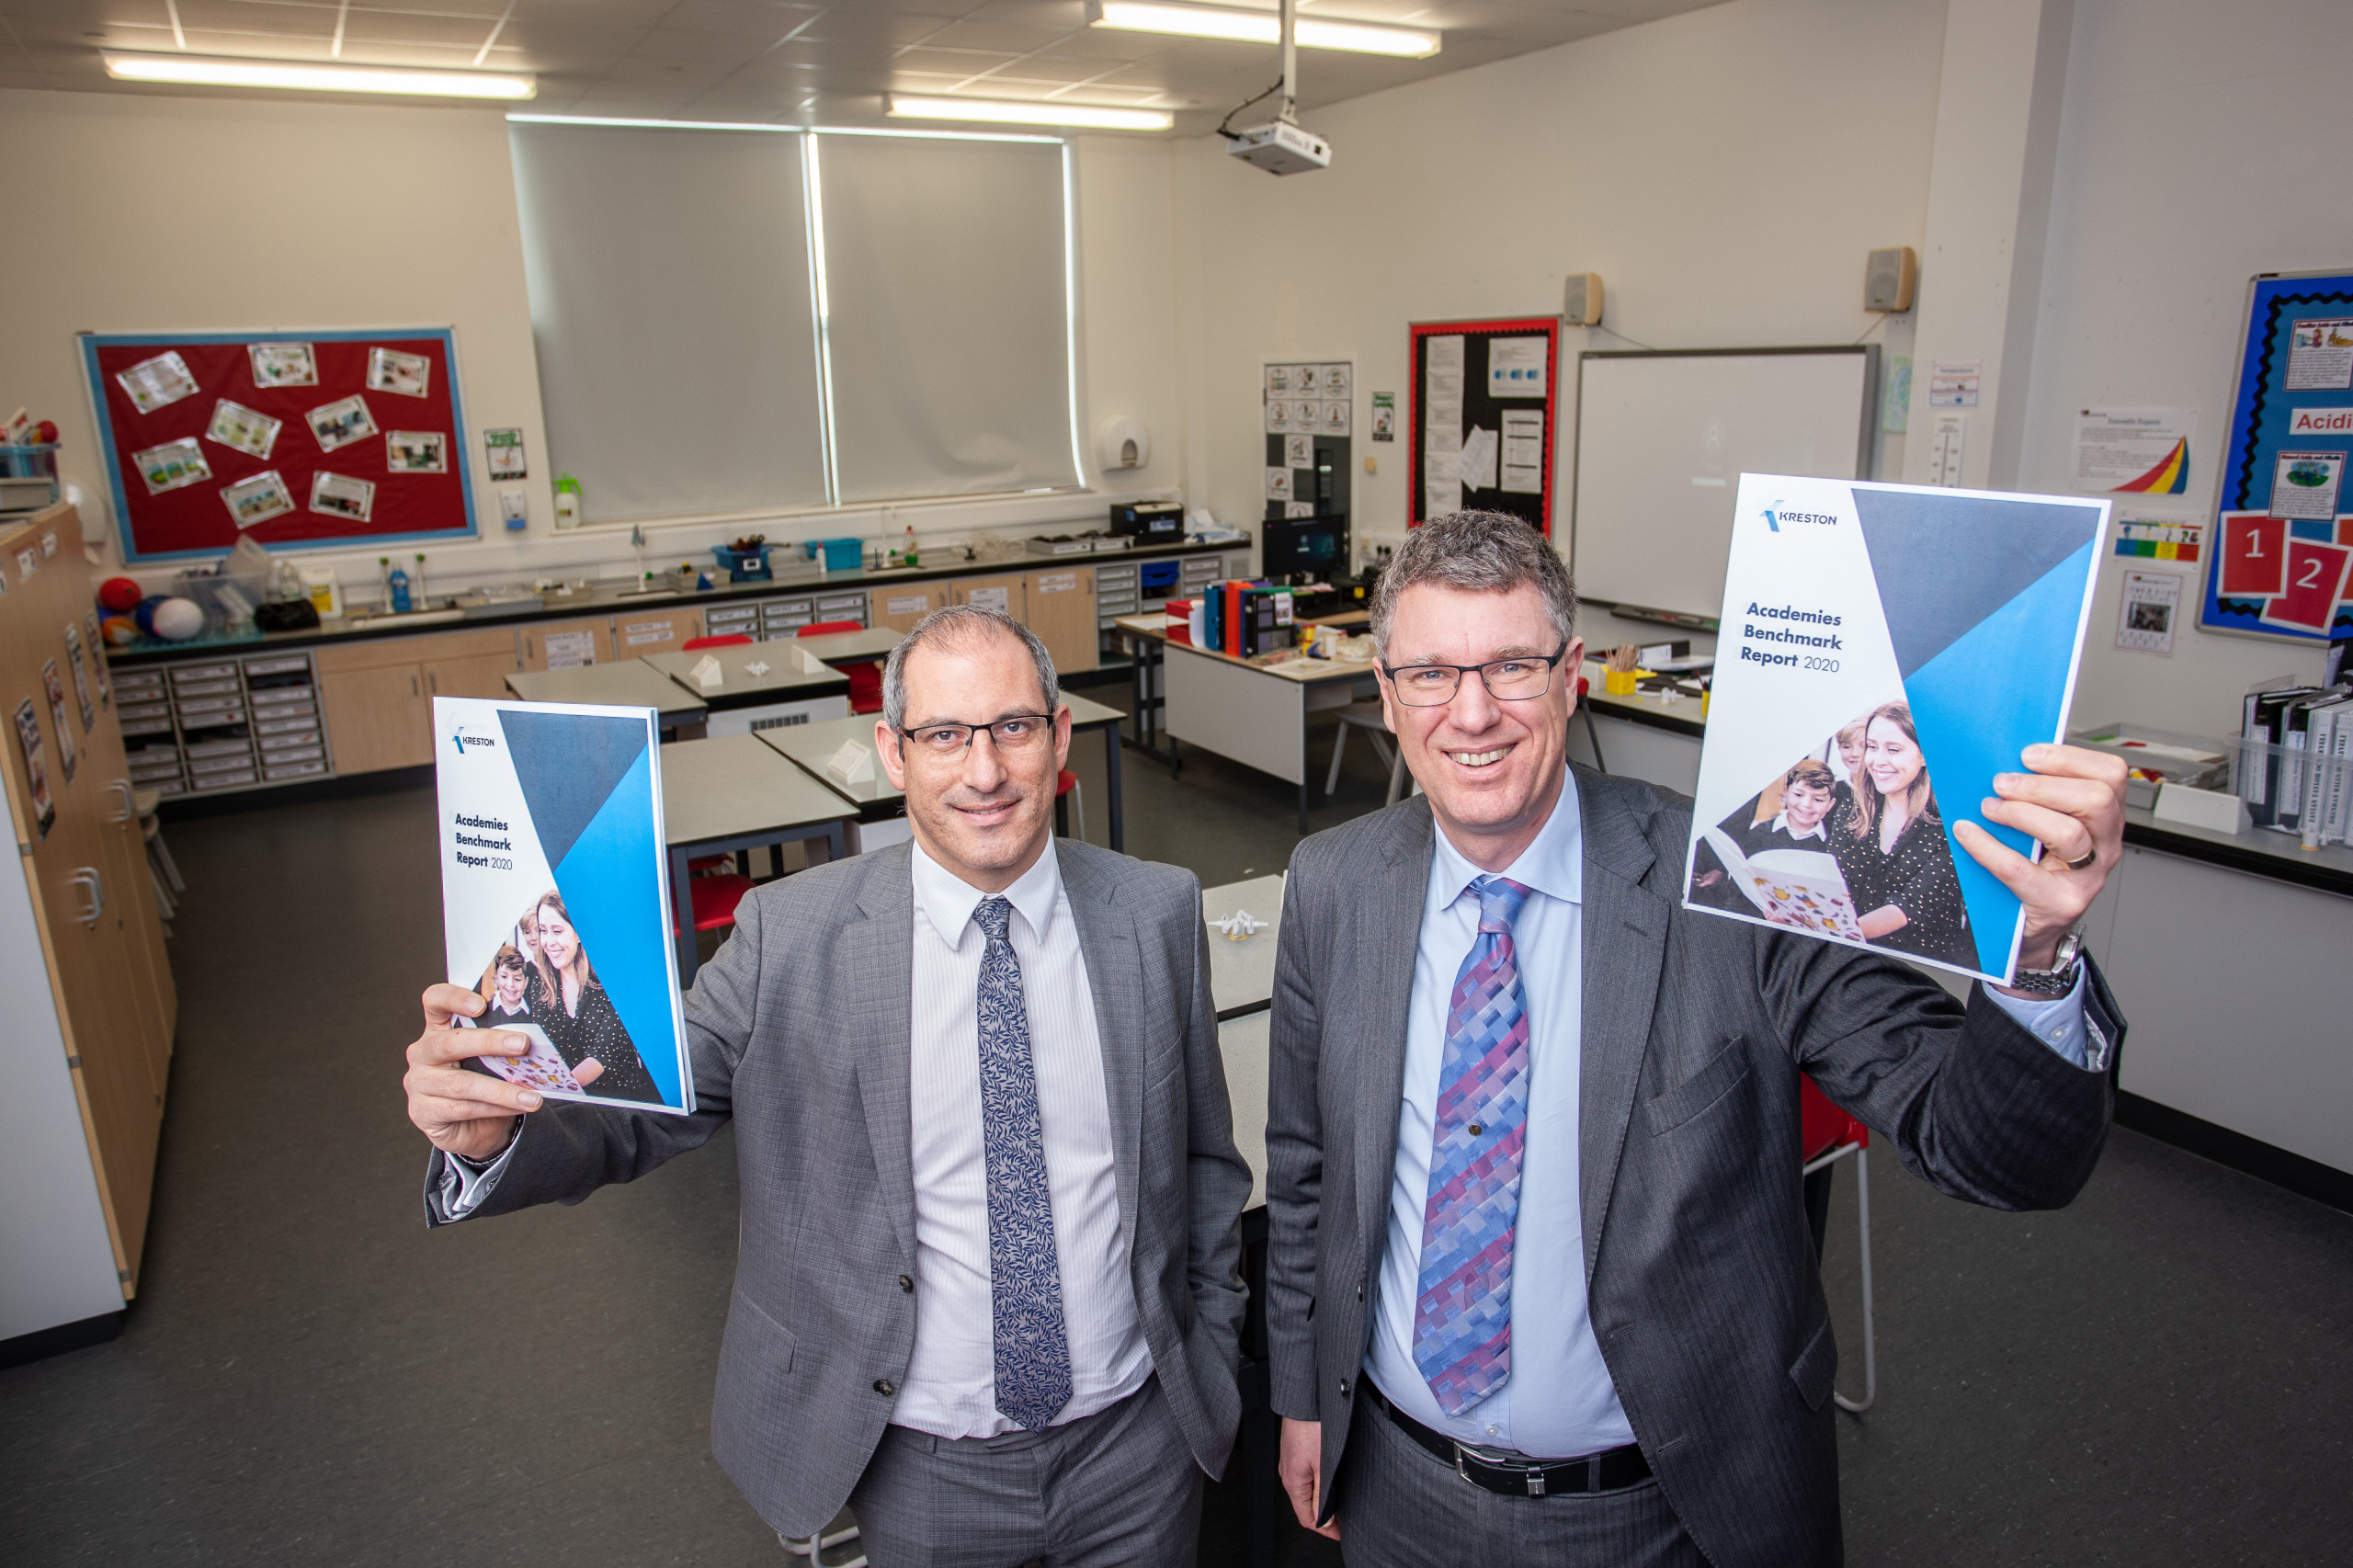 Chris Beaumont and Kevin Shotton with the Kreston Academies Benchmark Report 2020, Internal audit